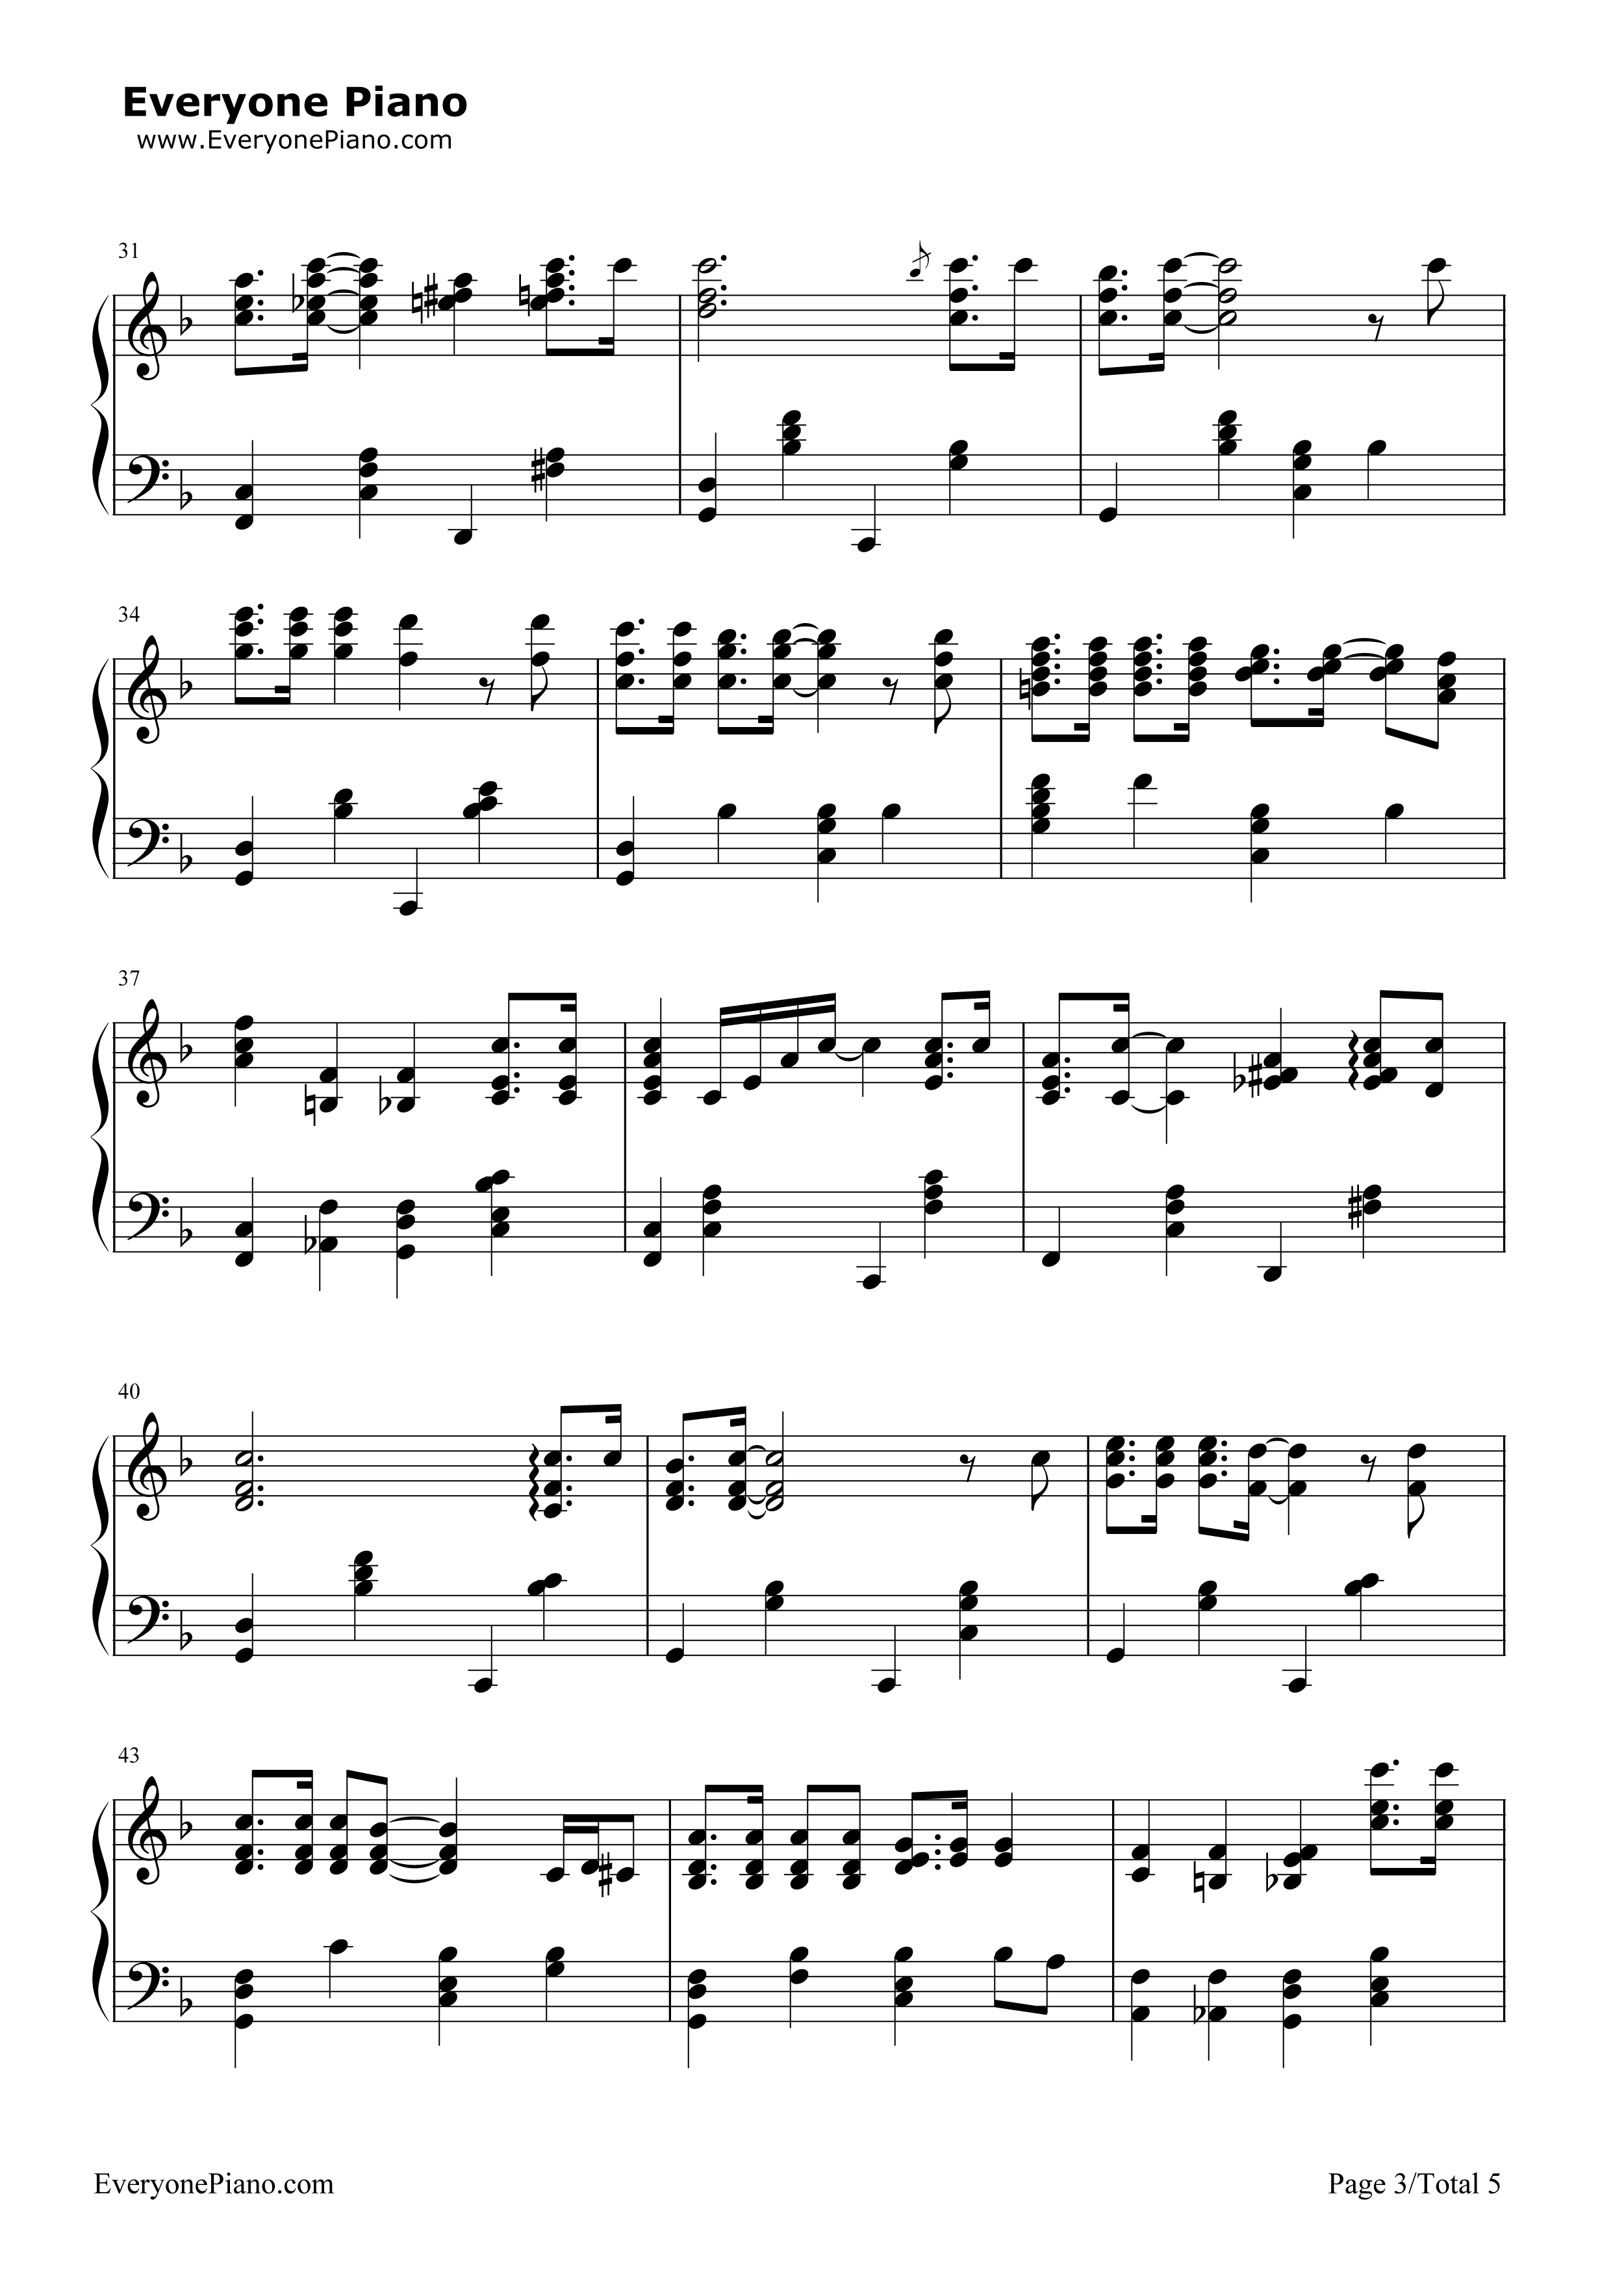 Winter wonderland christmas song stave preview 3 free piano sheet